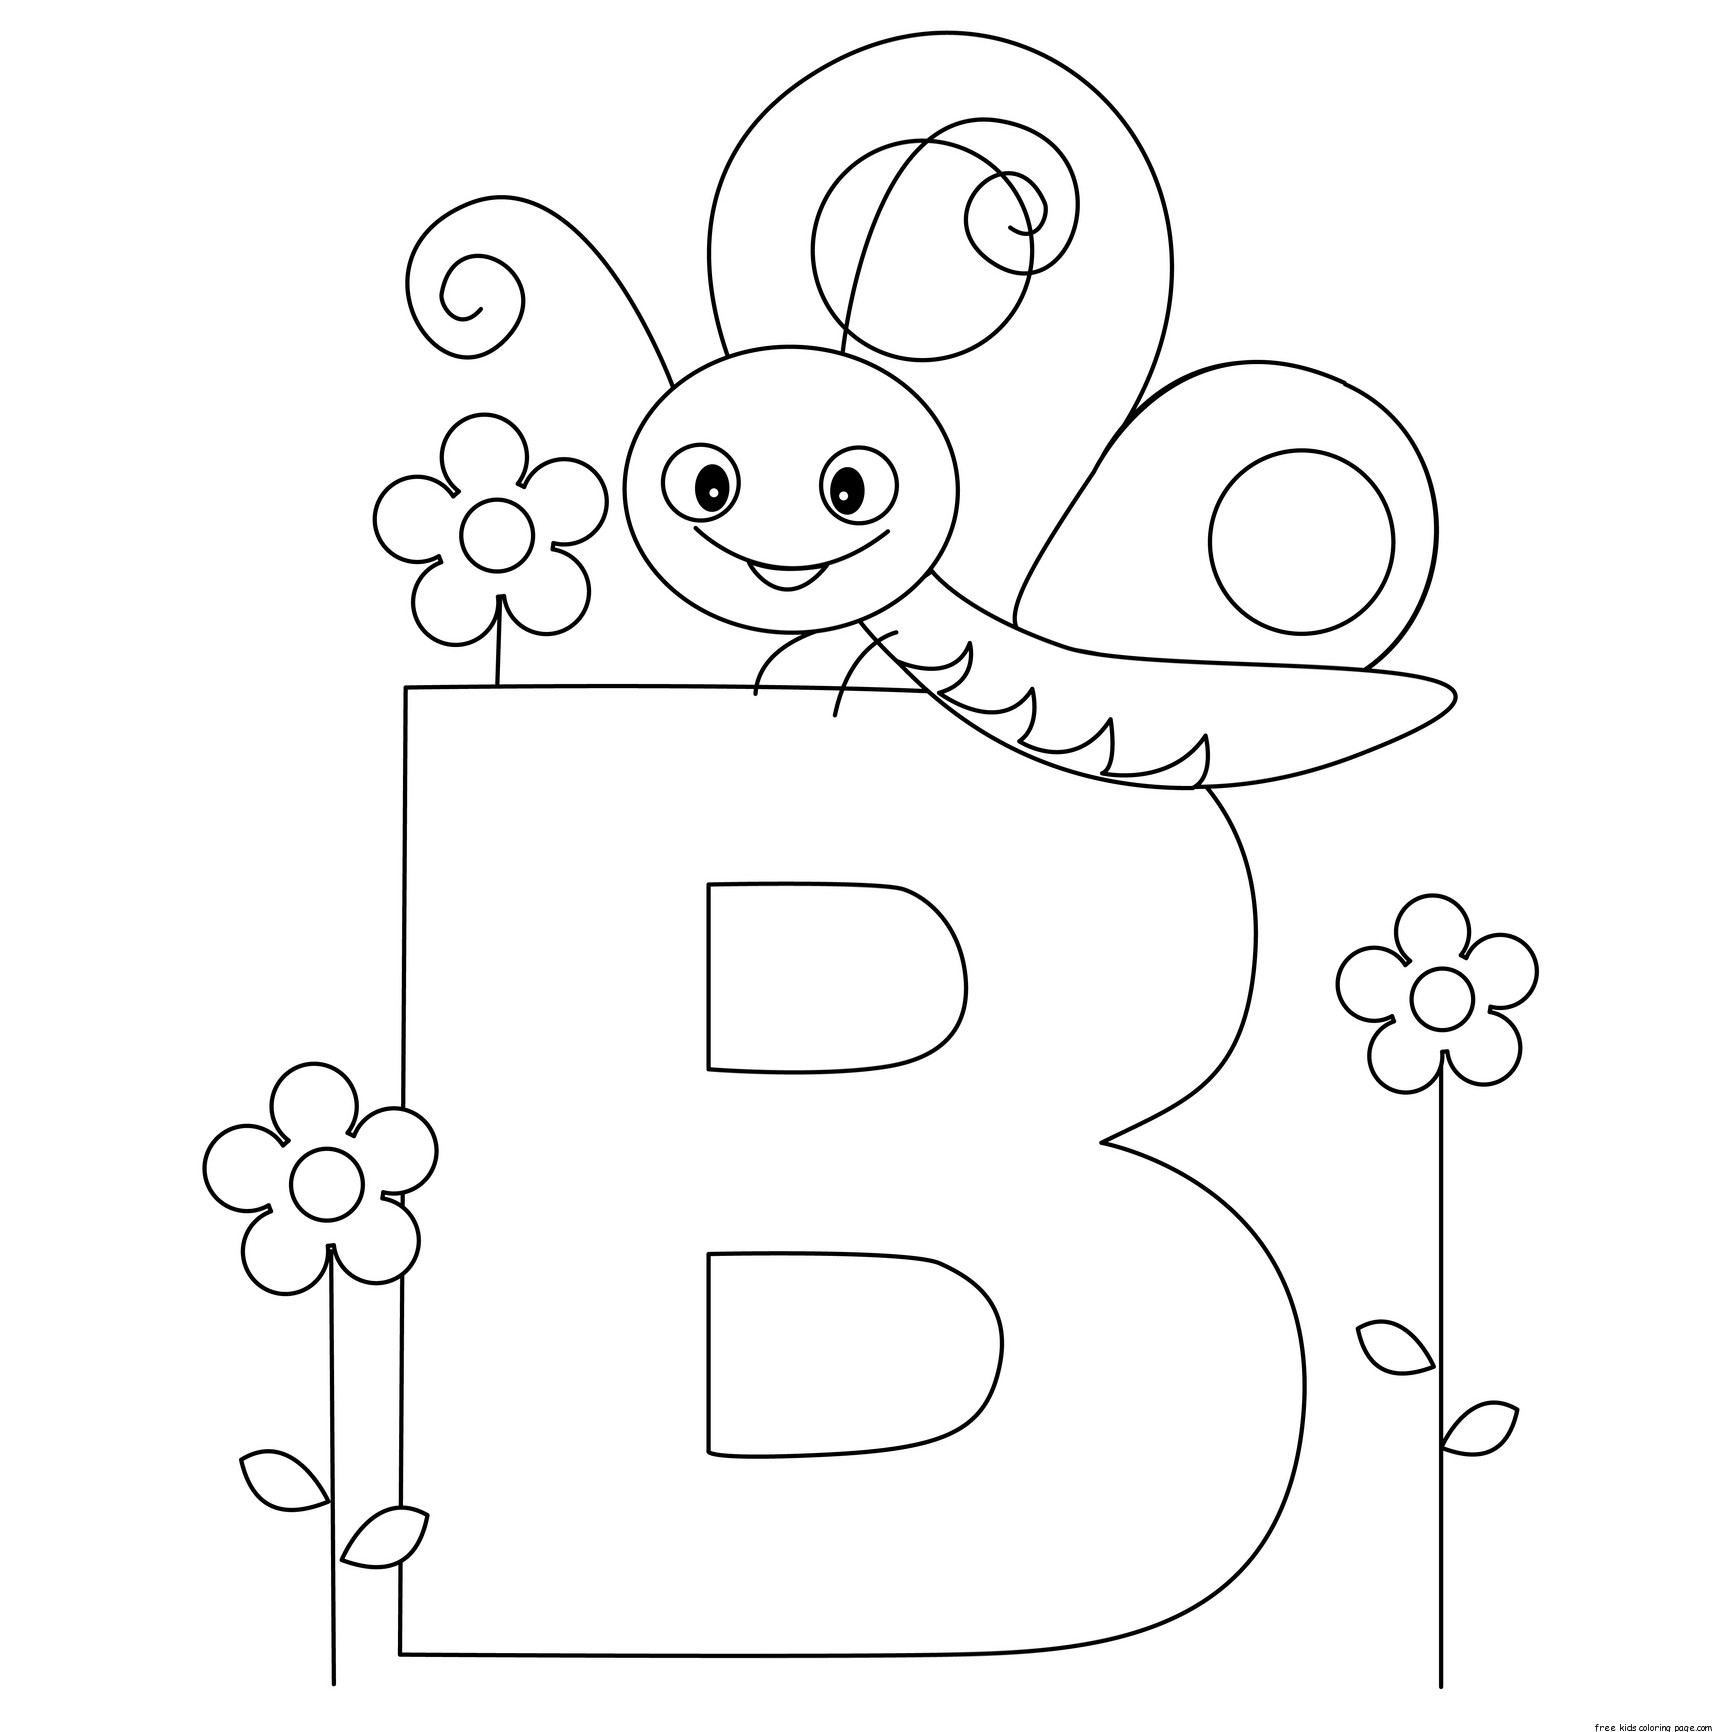 Printable Animal Alphabet Letter B Butterflyfree Printable